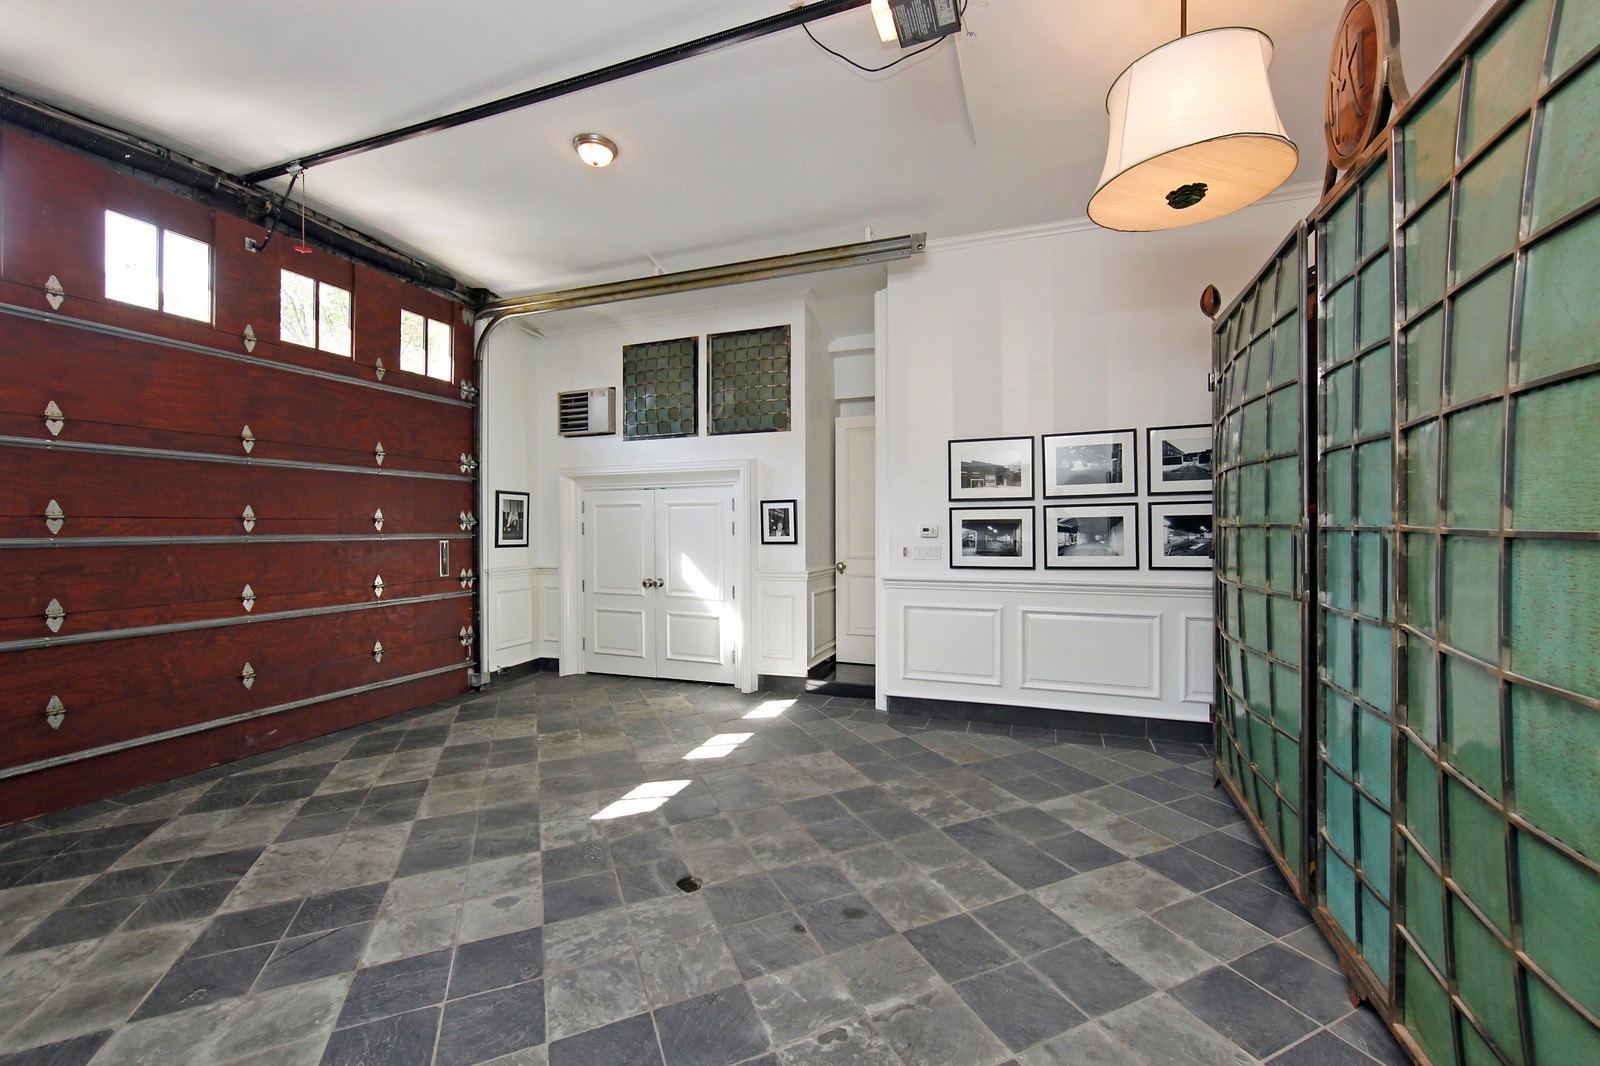 Real Estate Photography - 1424 W Ohio St, Chicago, IL, 60622 - Parking Garage